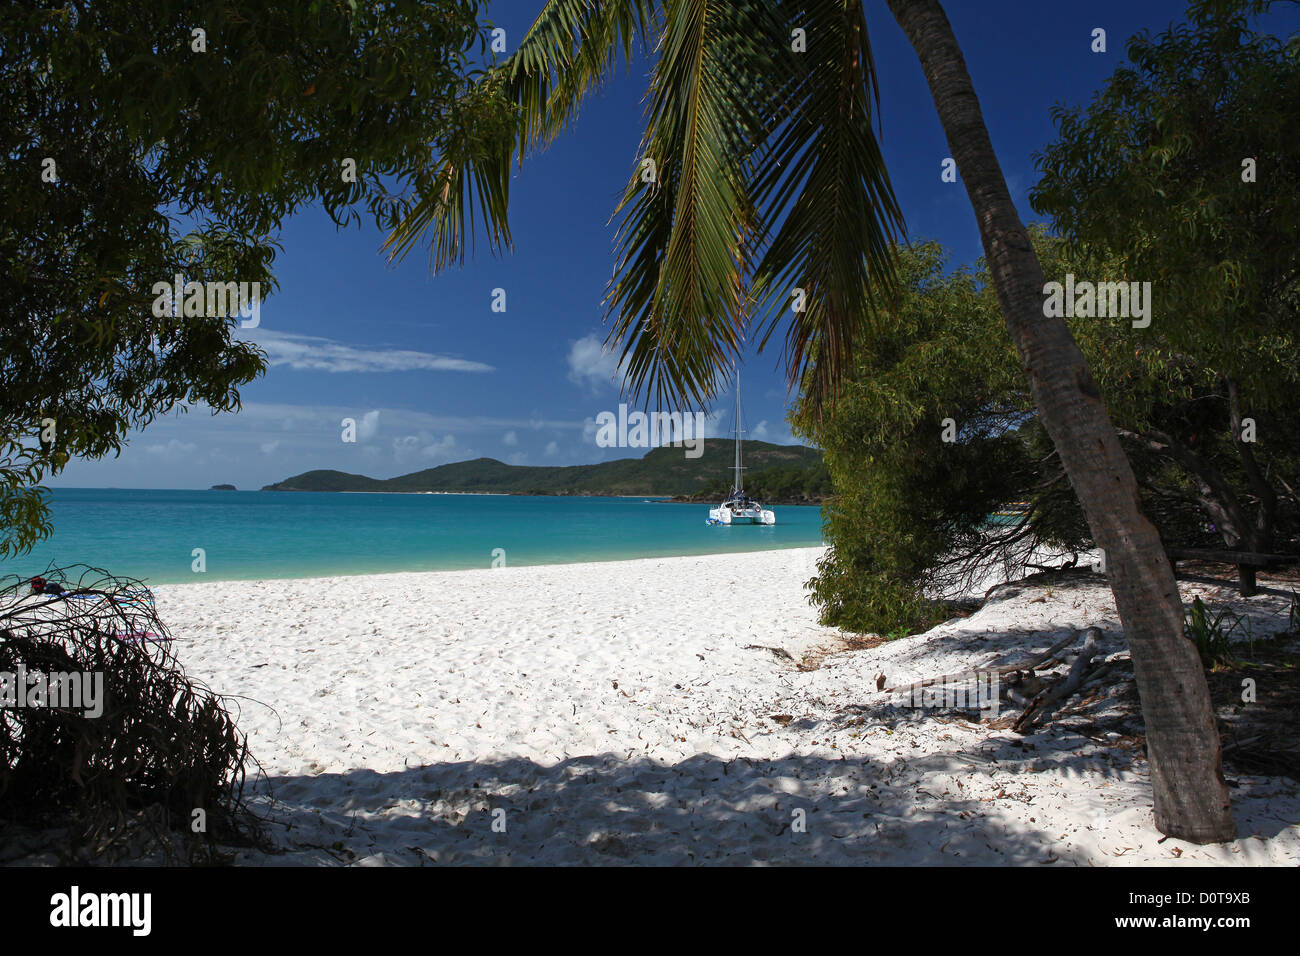 Whitsunday Island, Whitehaven Beach, seashore, sand, white, softy, sea, turquoise, clear, warmly, tropics, dream - Stock Image